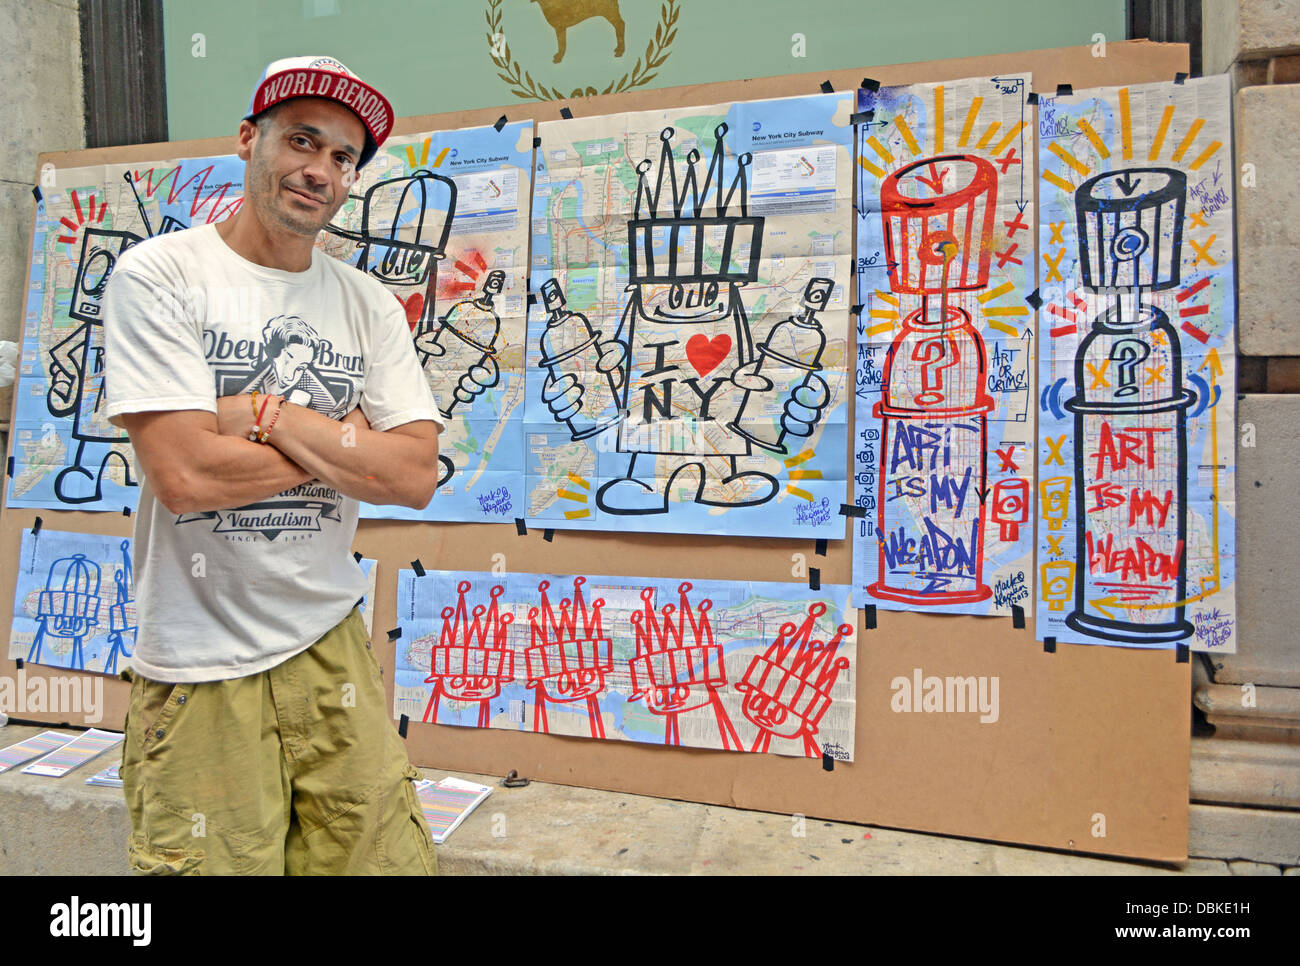 Graffiti art sale -  Portrait Of New York City Graffiti Artist Mark Alequin In Front Of His Work For Sale